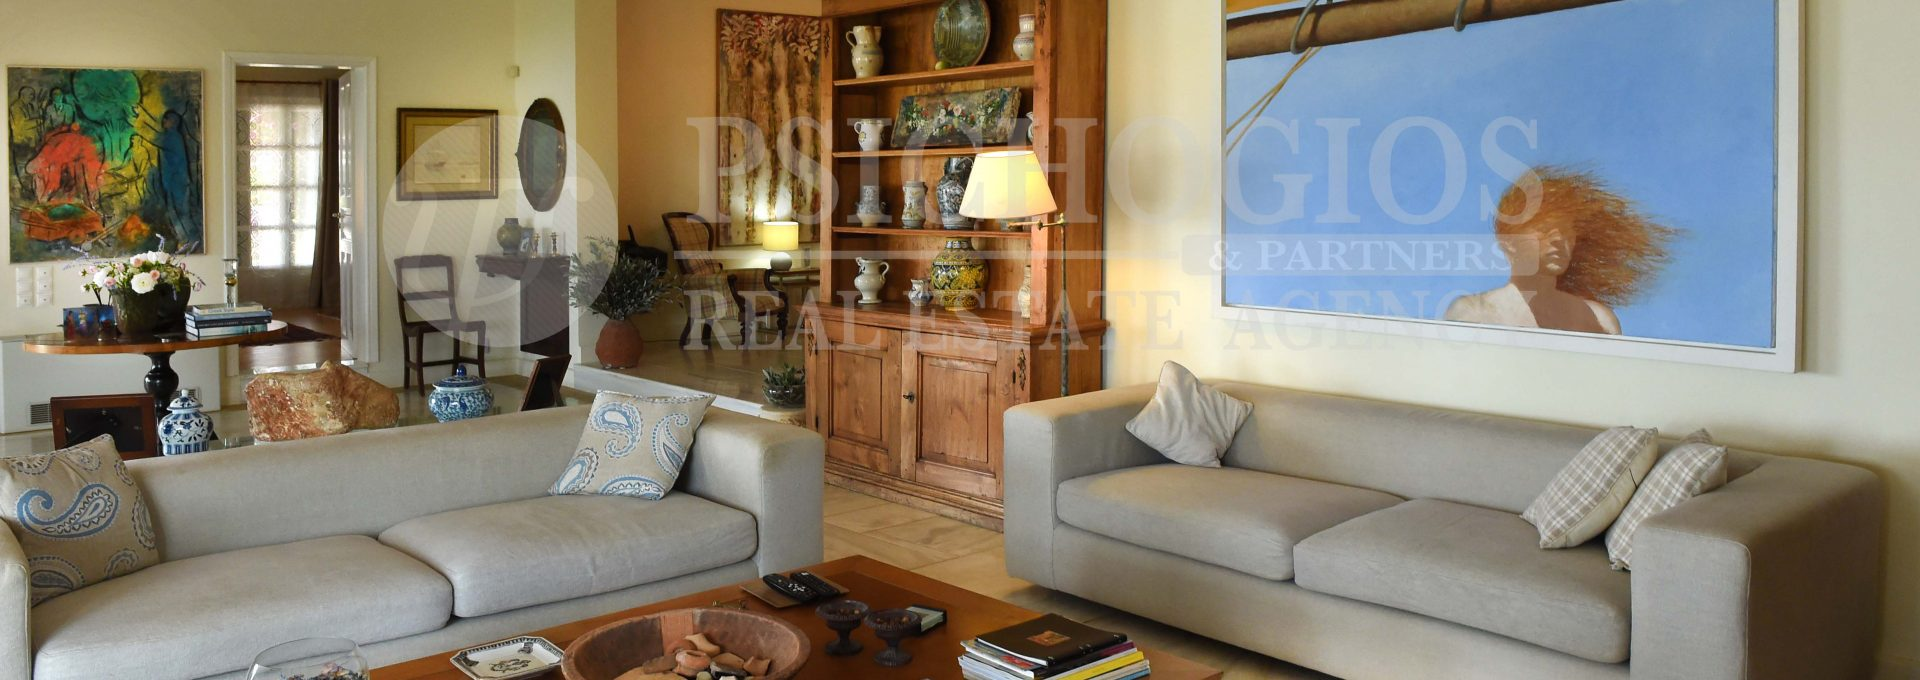 for_rent_house_600_square_meters_sea_view_porto_heli_greece (140)